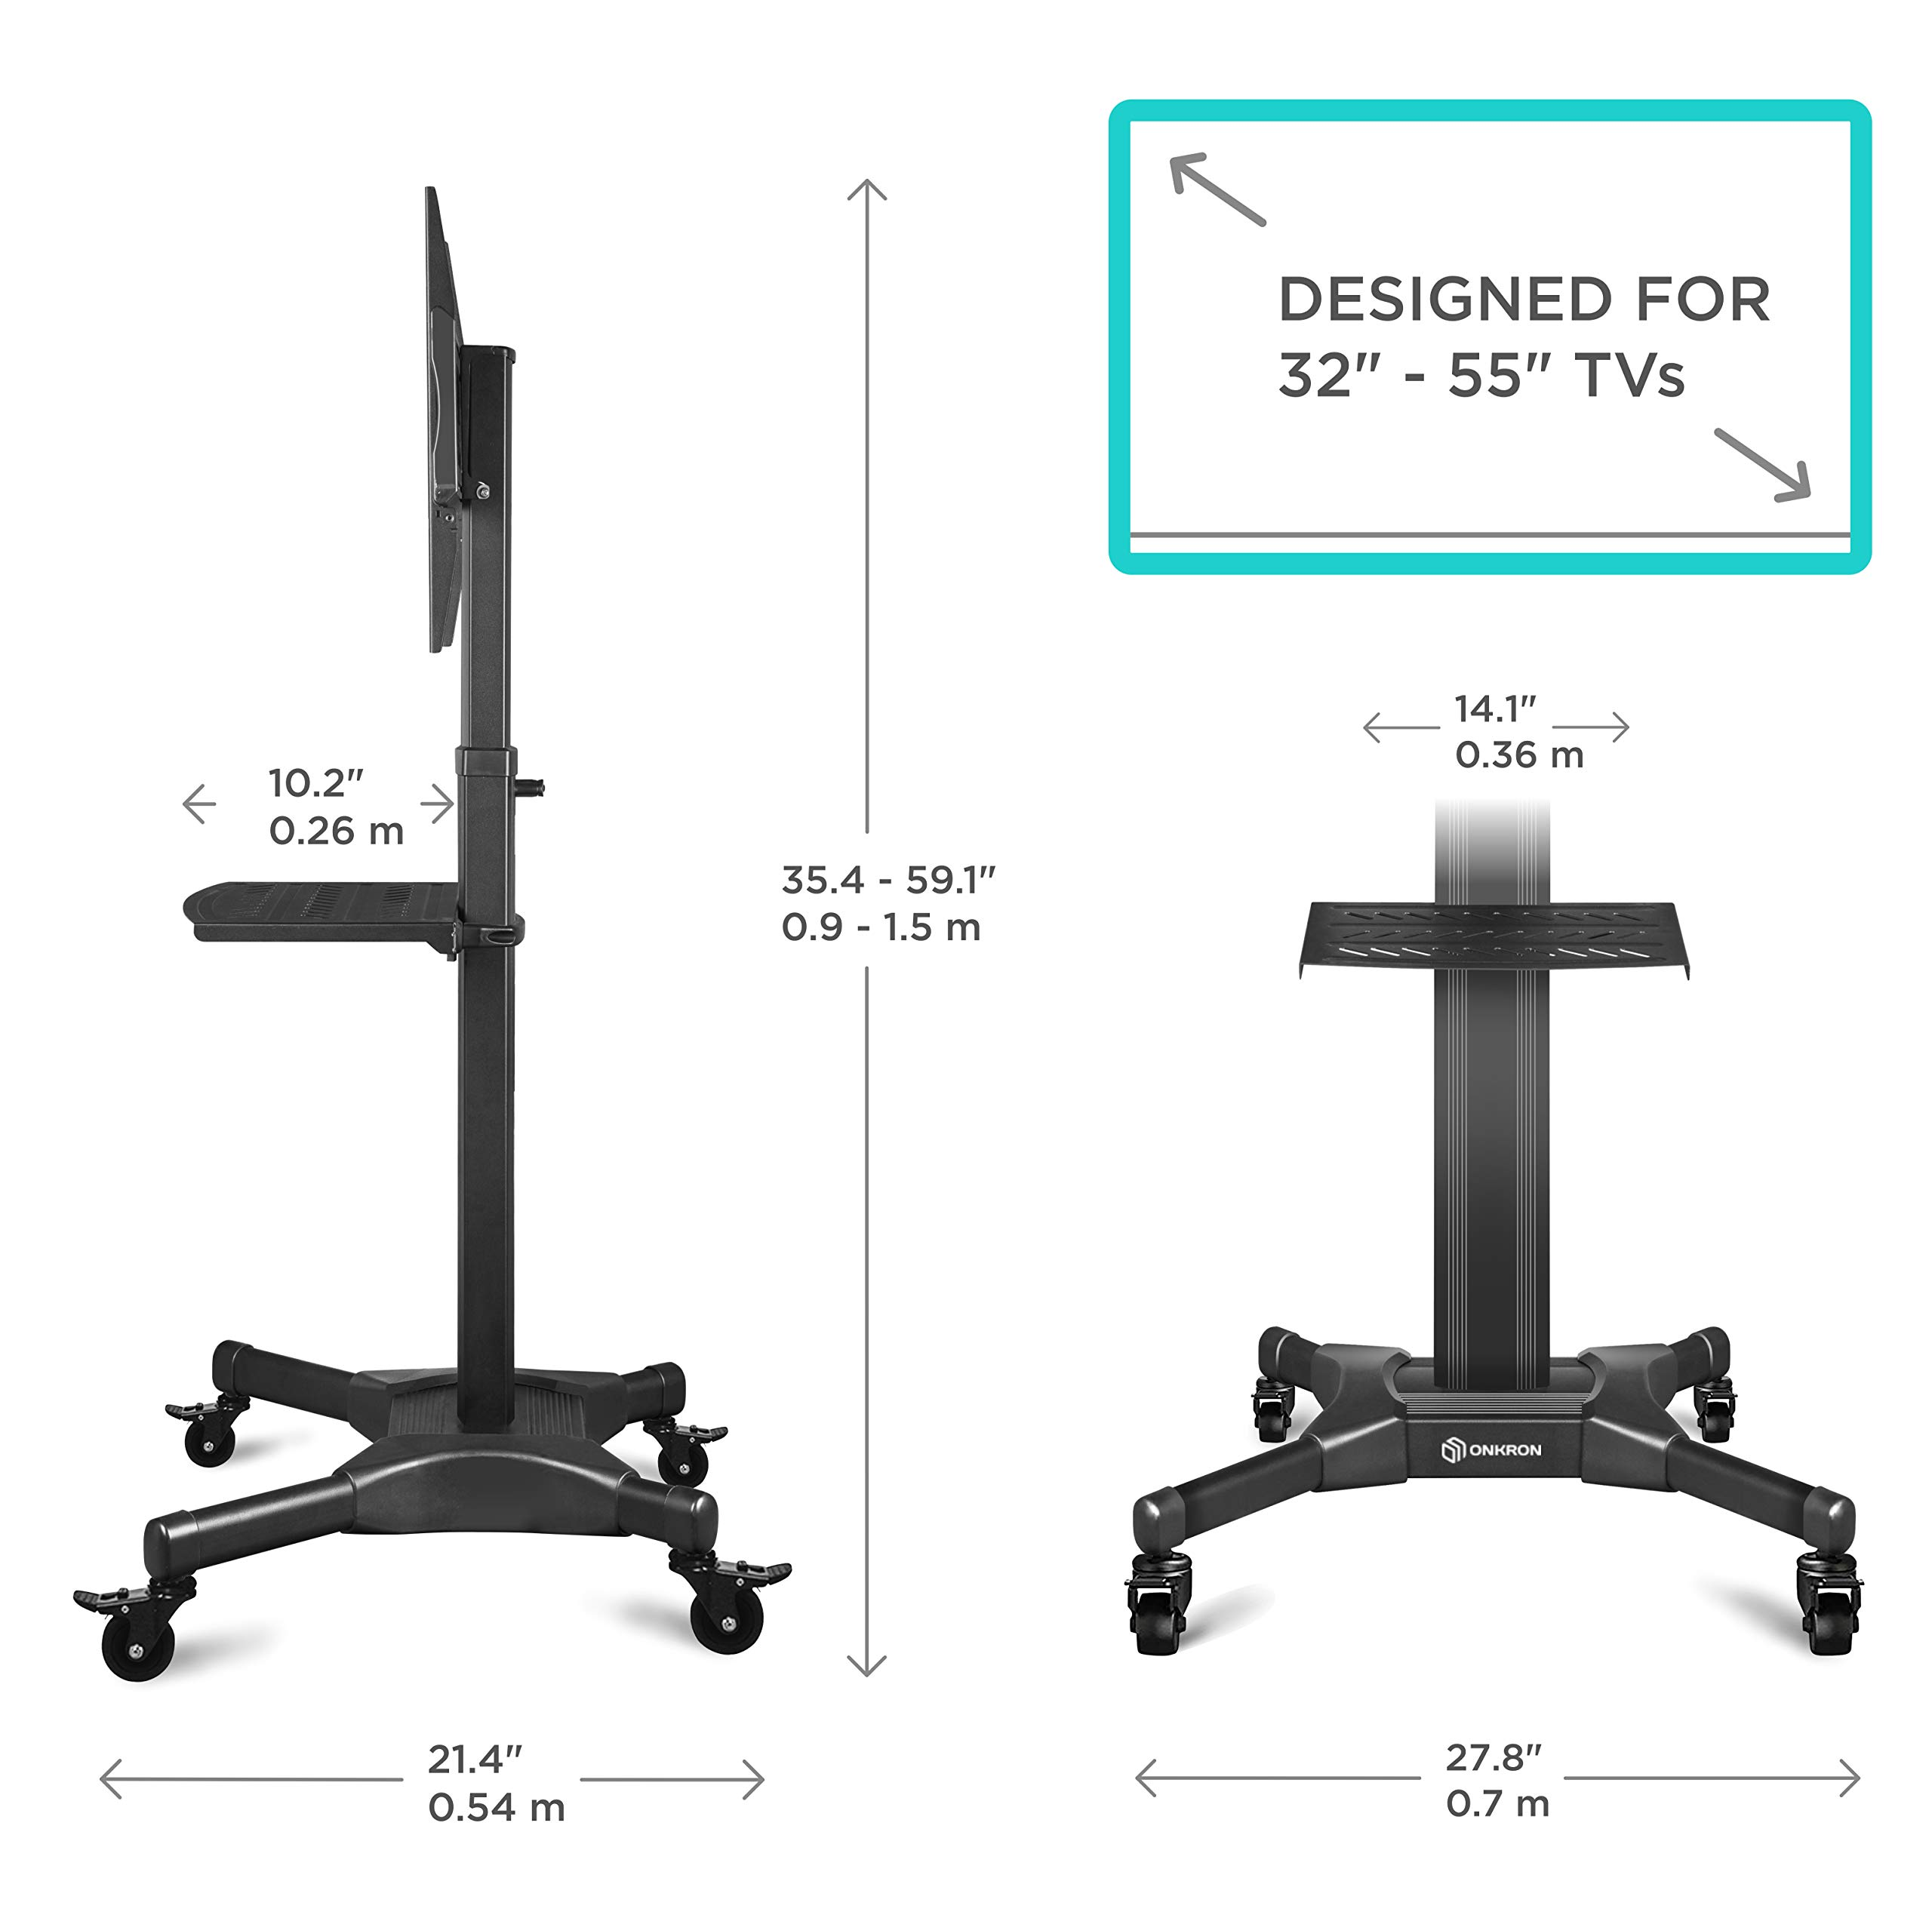 ONKRON Mobile TV Stand with Mount Rolling TV Cart for 32'' - 55'' LCD LED Flat Screen TV with Wheels Shelves Height Adjustable TV Trolley (TS2551) by ONKRON (Image #4)